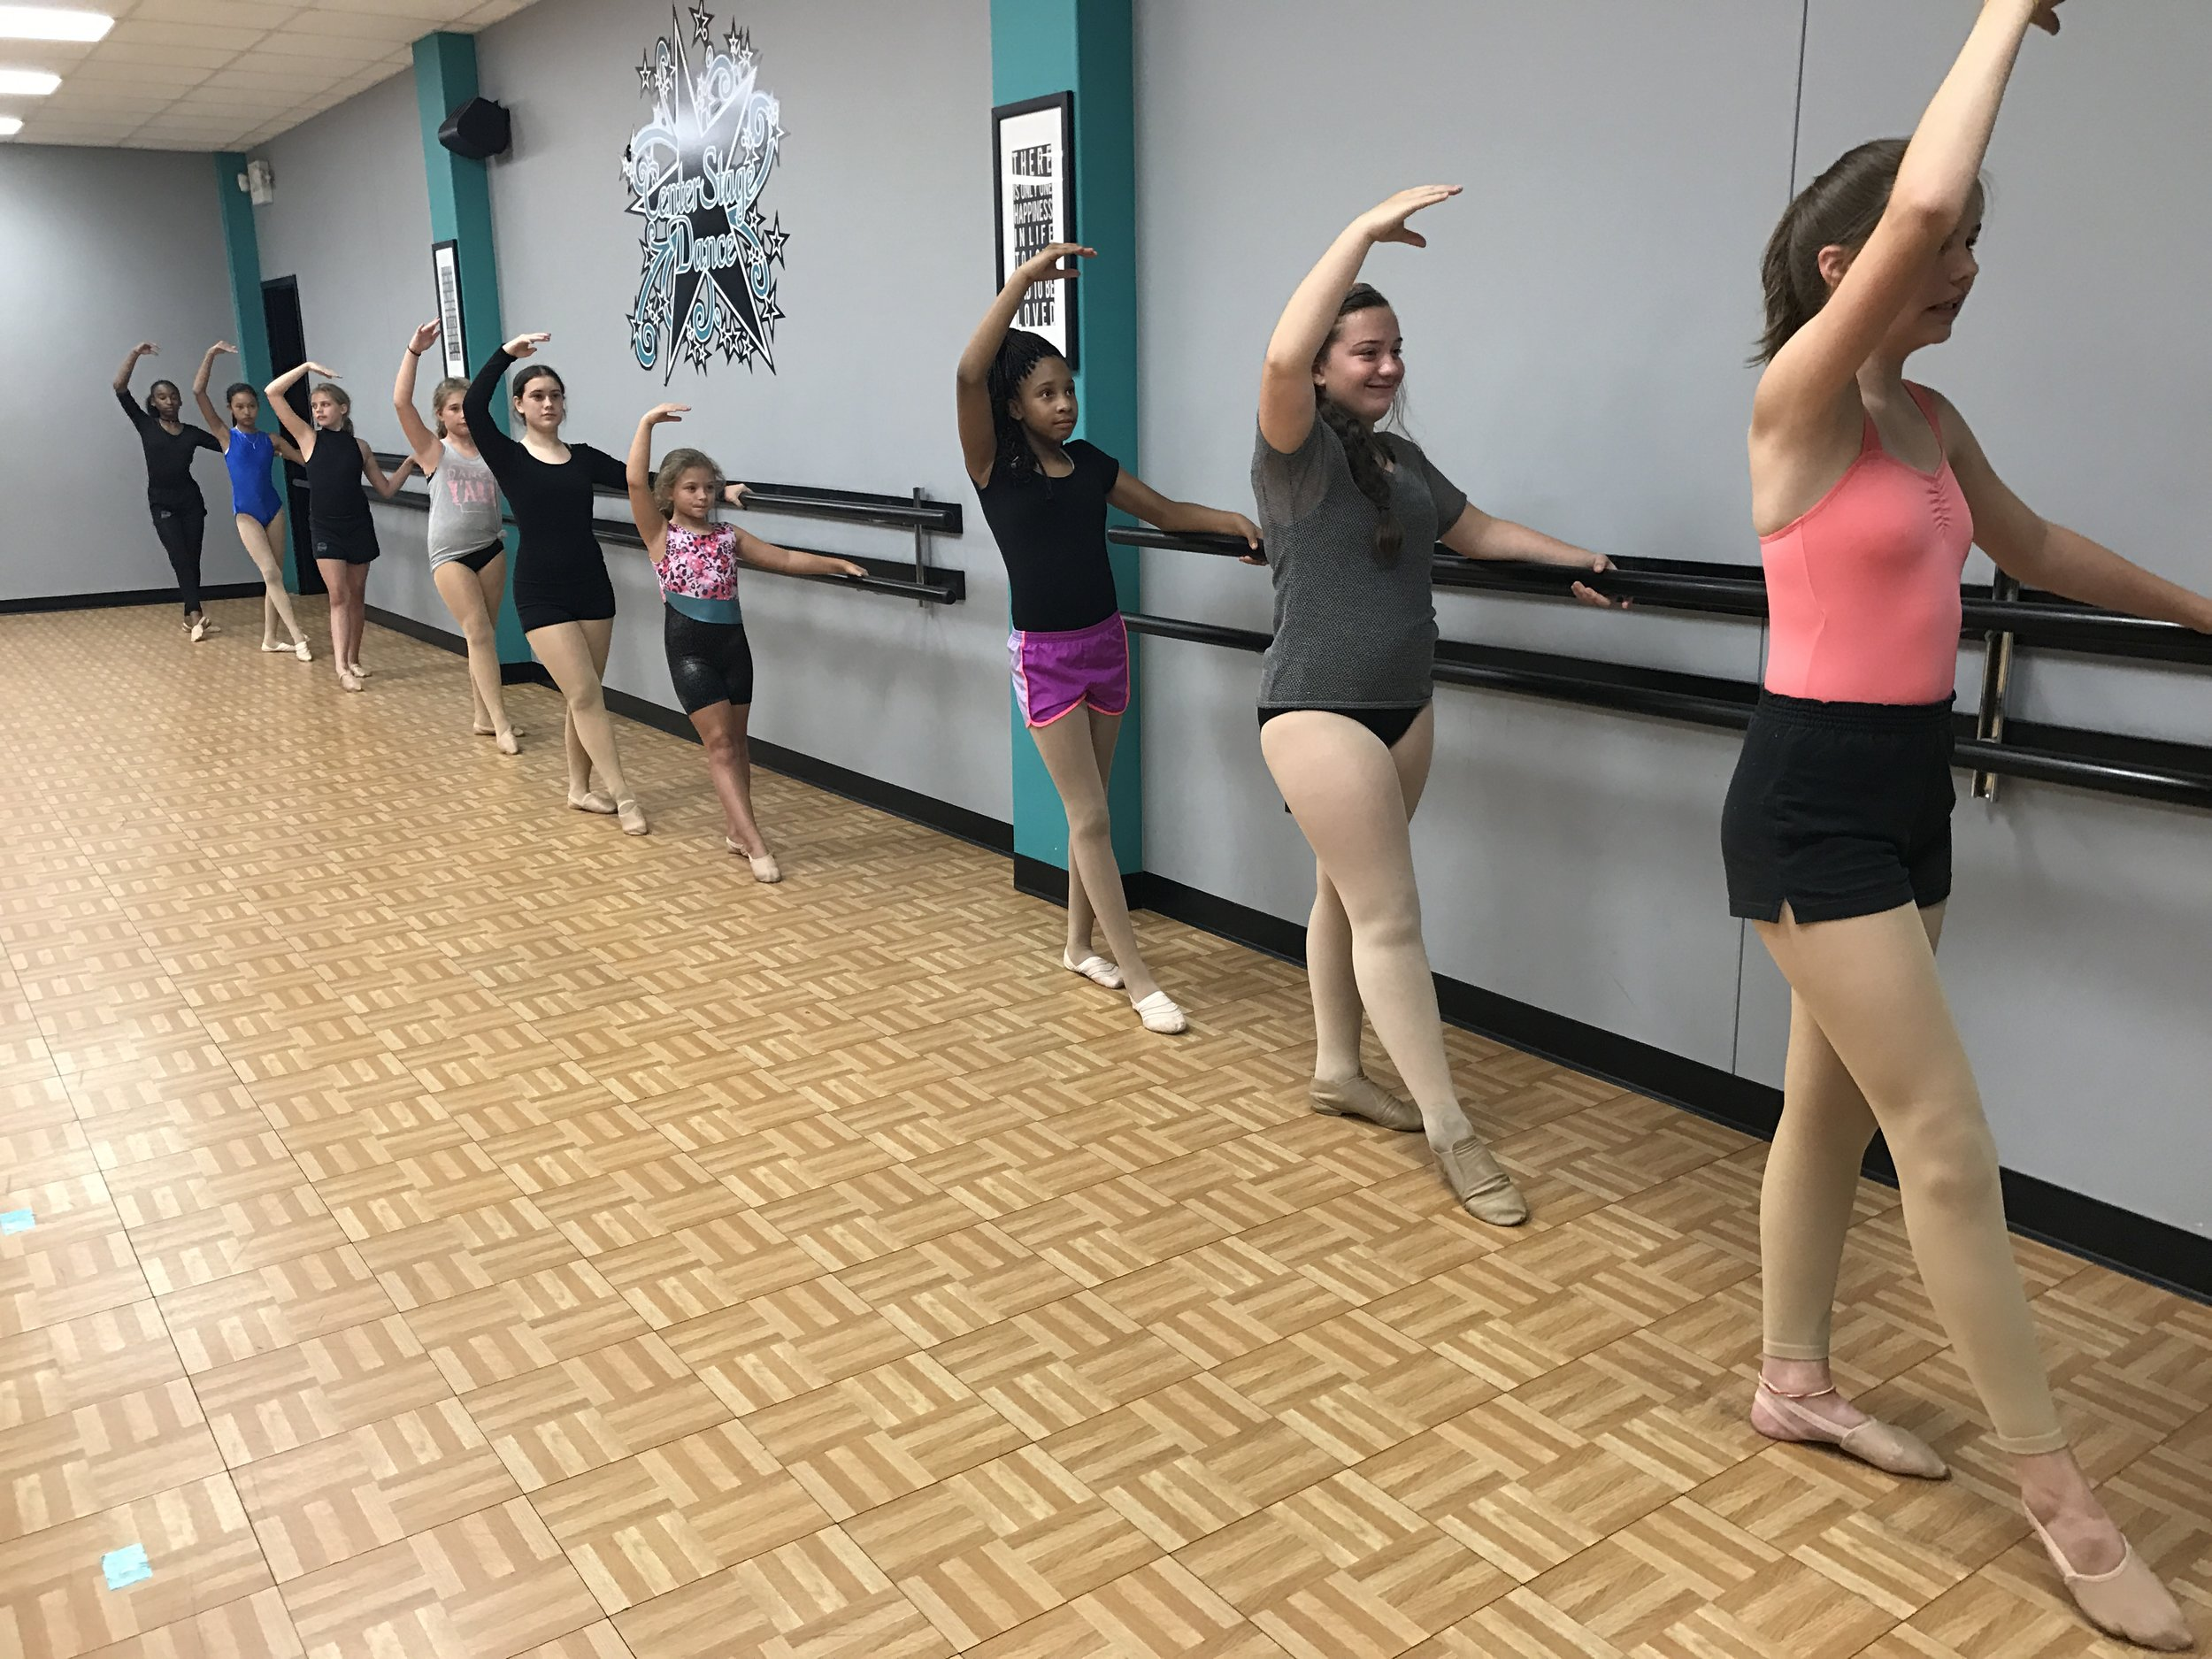 Registering for class is easy!  Follow the link below to create an account and register your child today!  - https://dancestudio-pro.com/online/index.php?account_id=9206